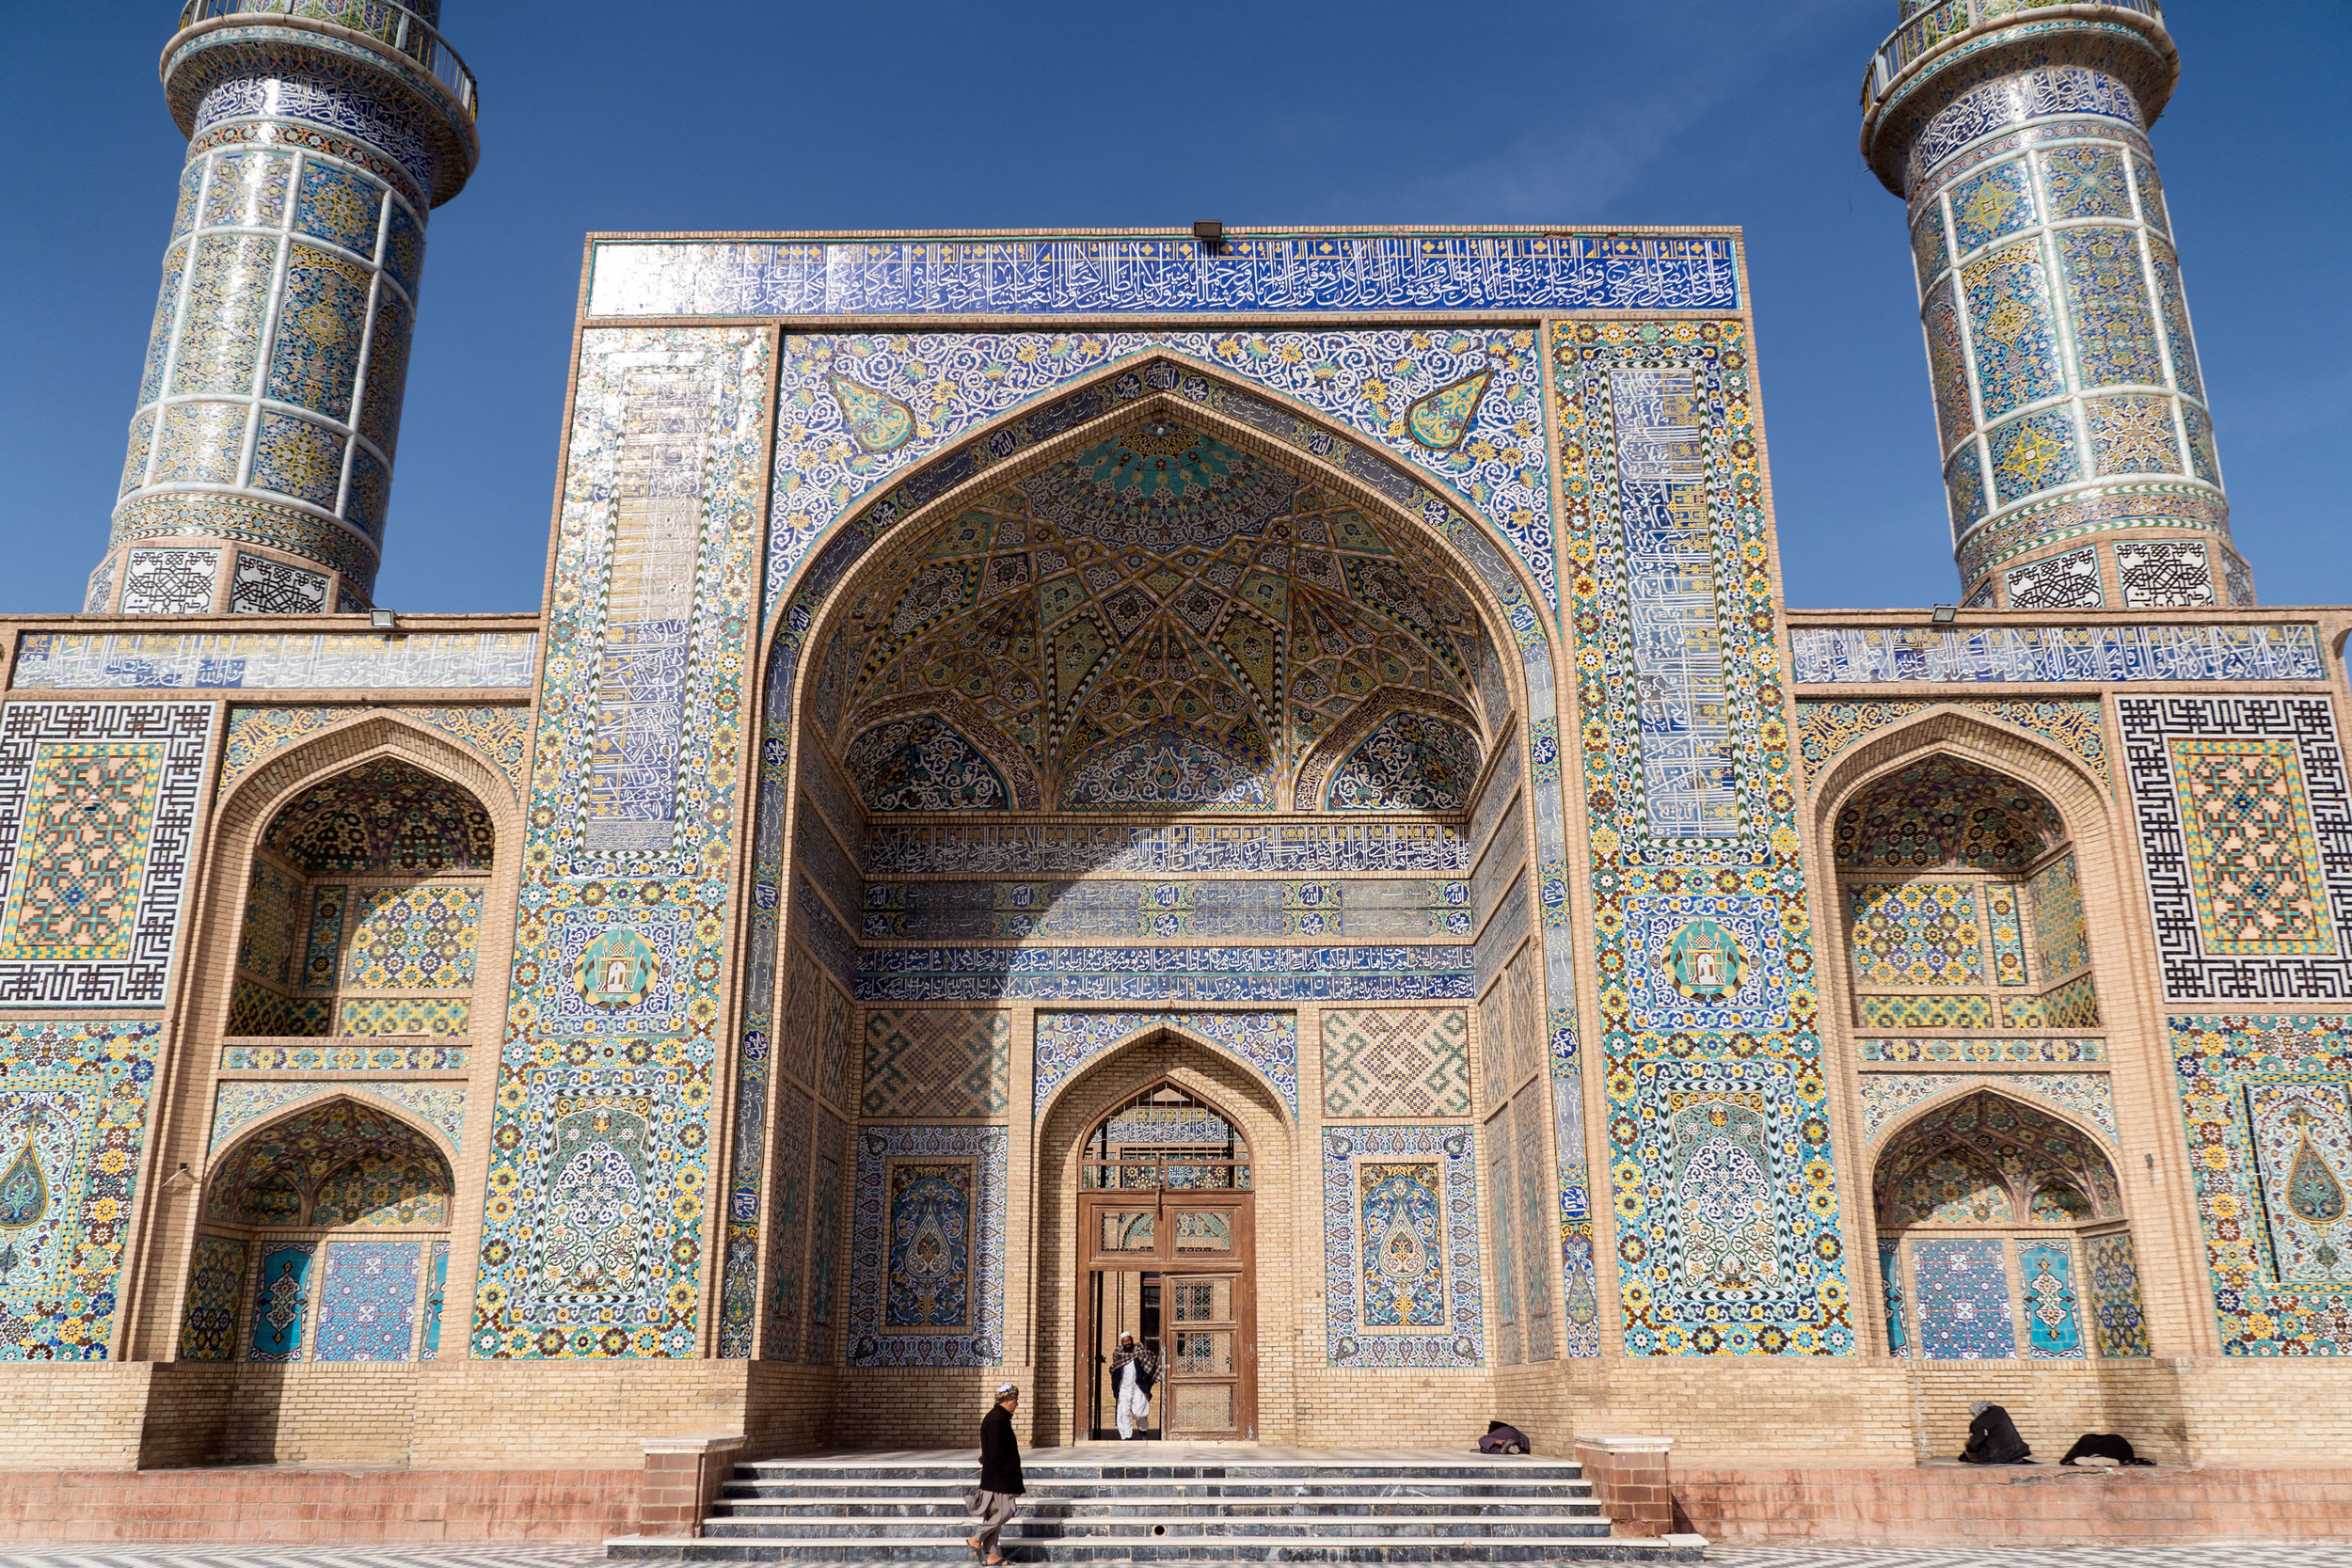 The entrance to Herat's Friday Mosque.